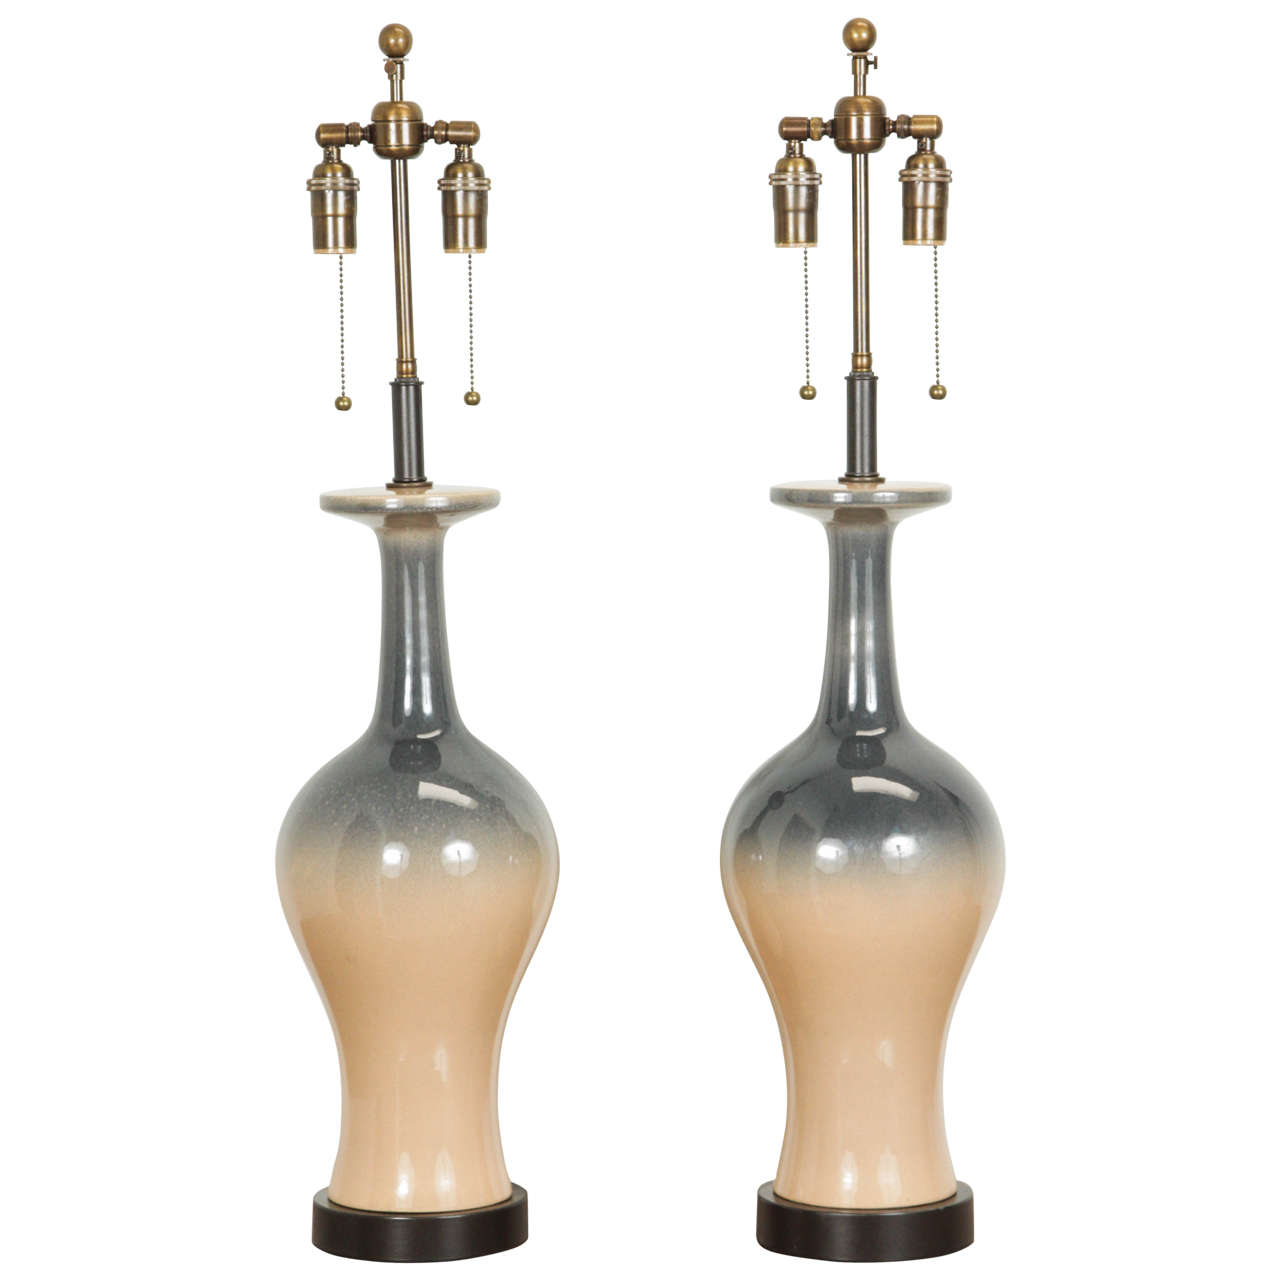 Pair of Ceramic Lamps with an Ombré Glaze